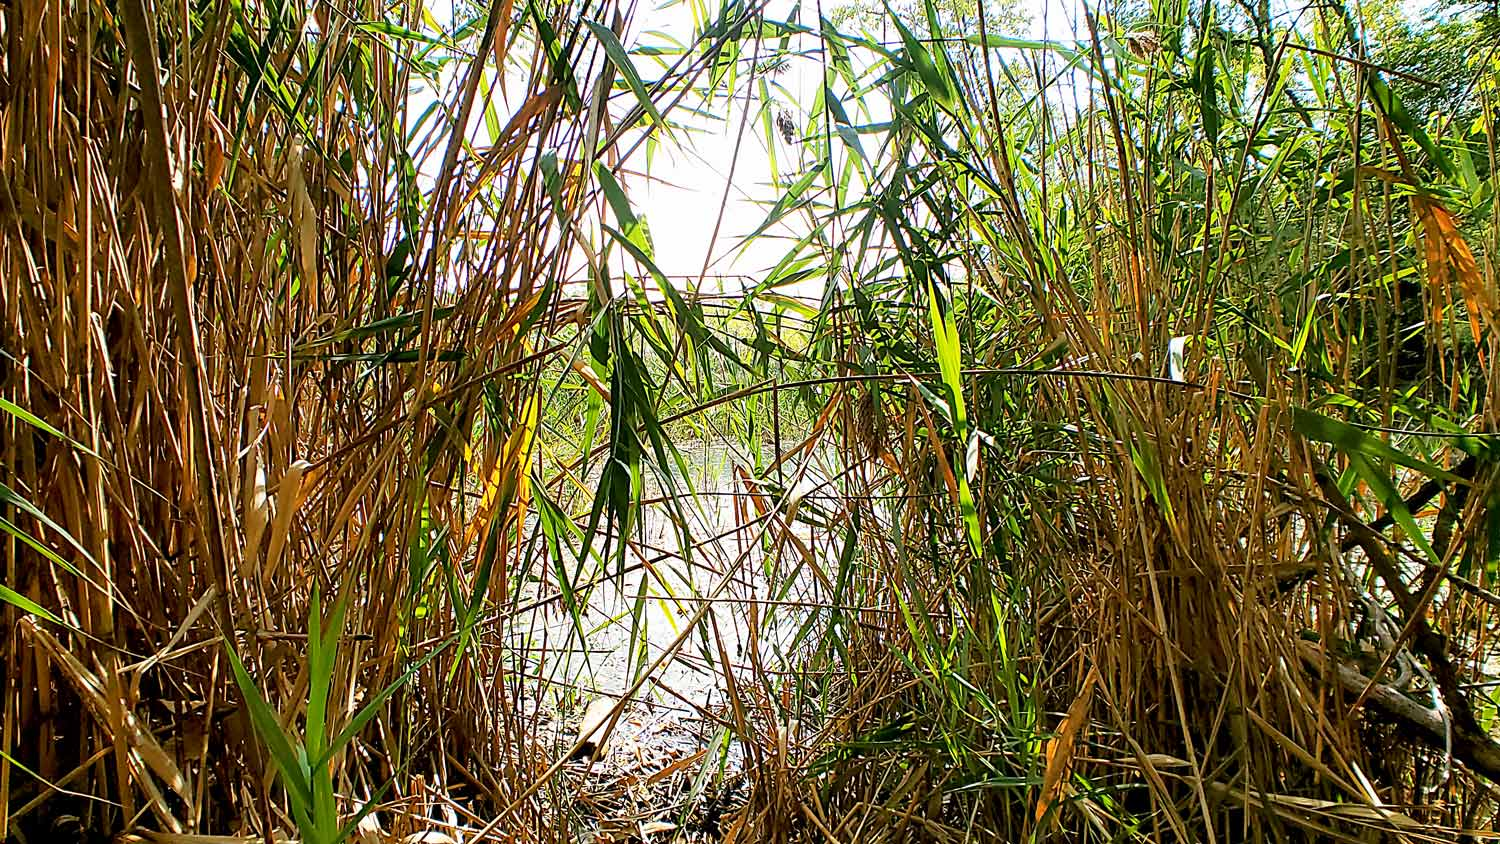 A view through the reeds at The Hollows.